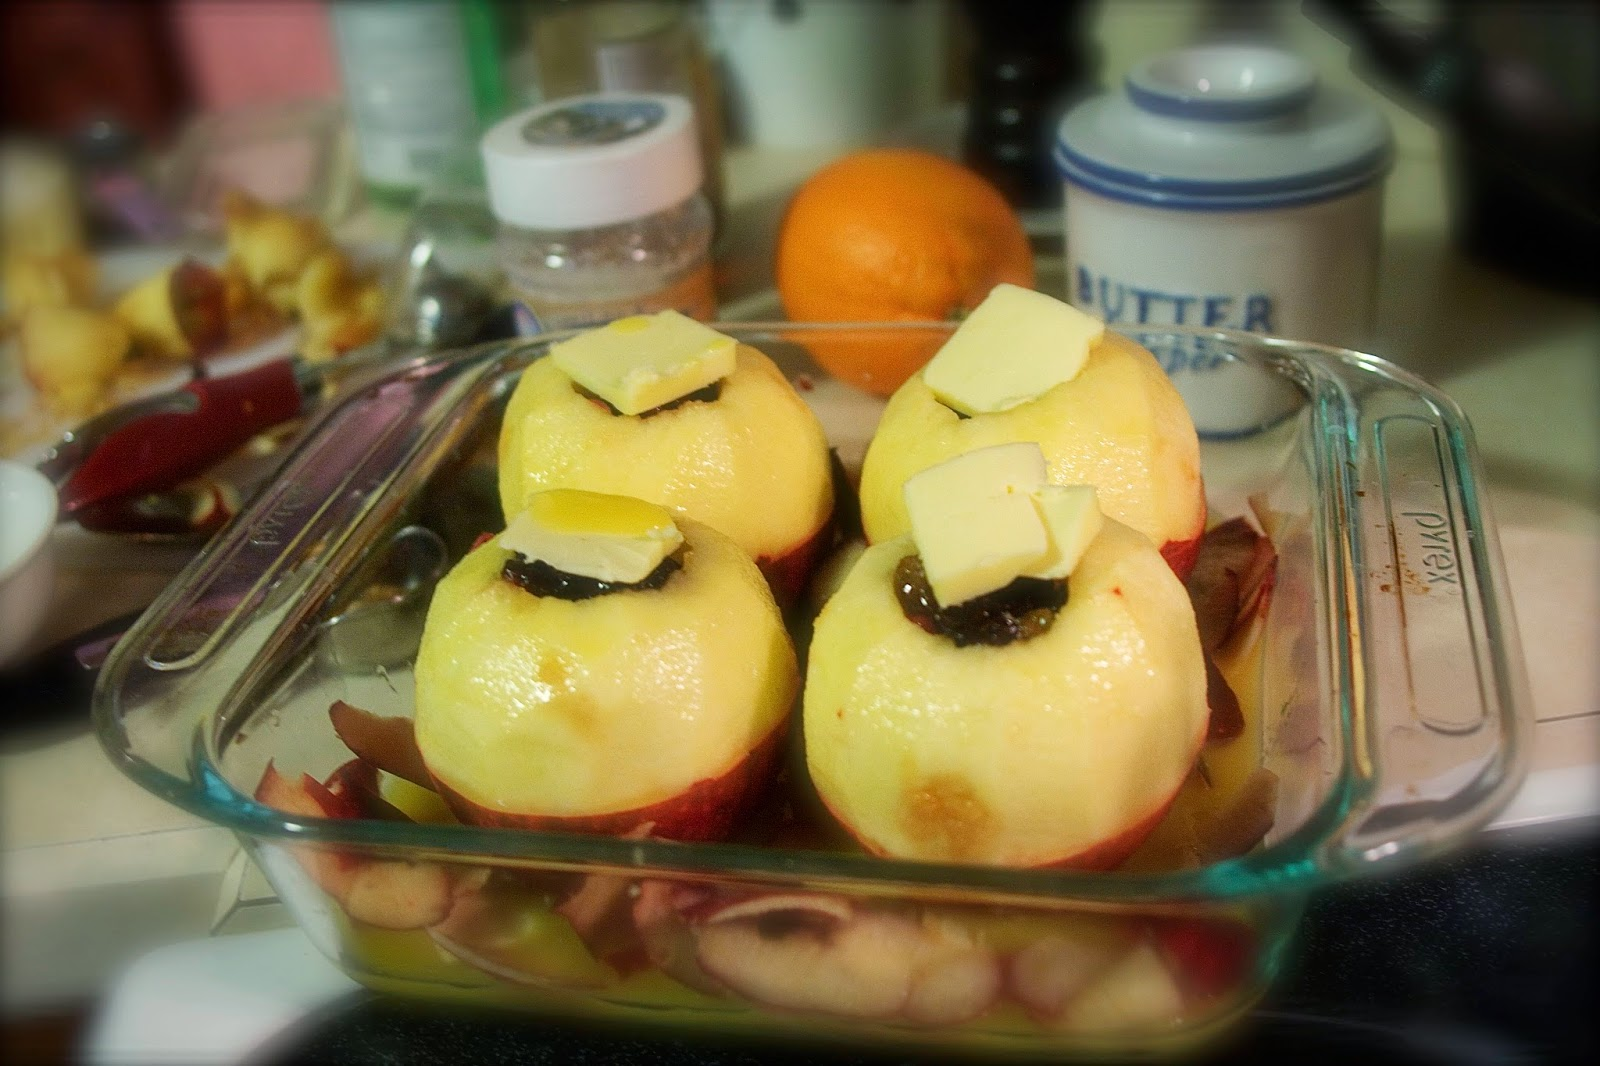 apples before baking: simple living and eating